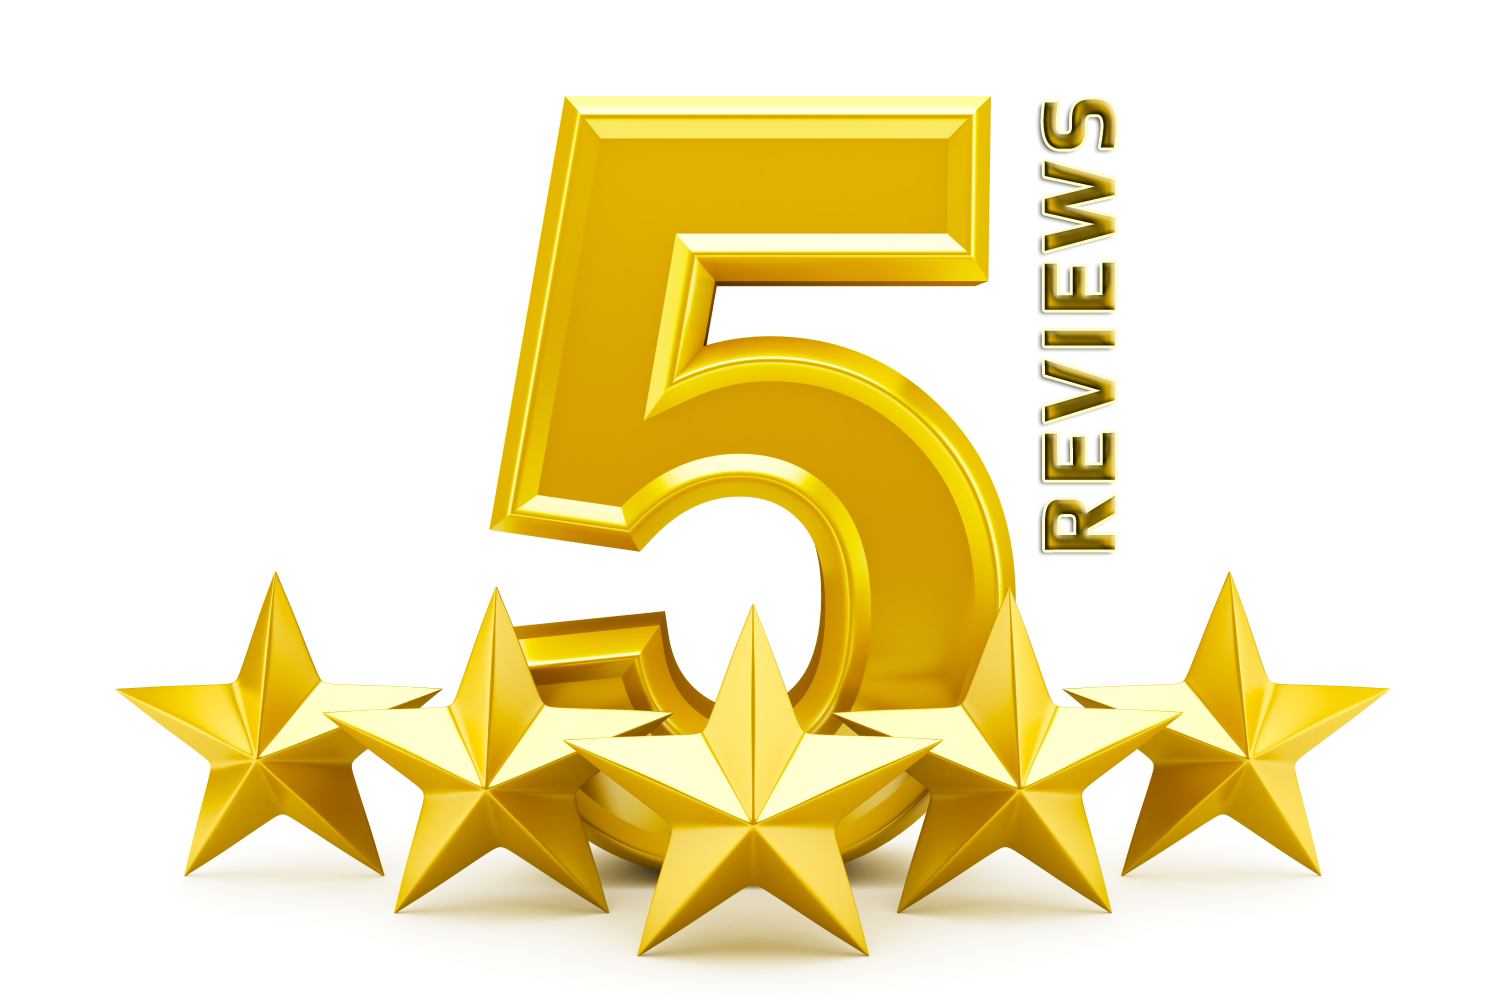 Get 100% safe 5 stars android app reviews from unique device, IP and account